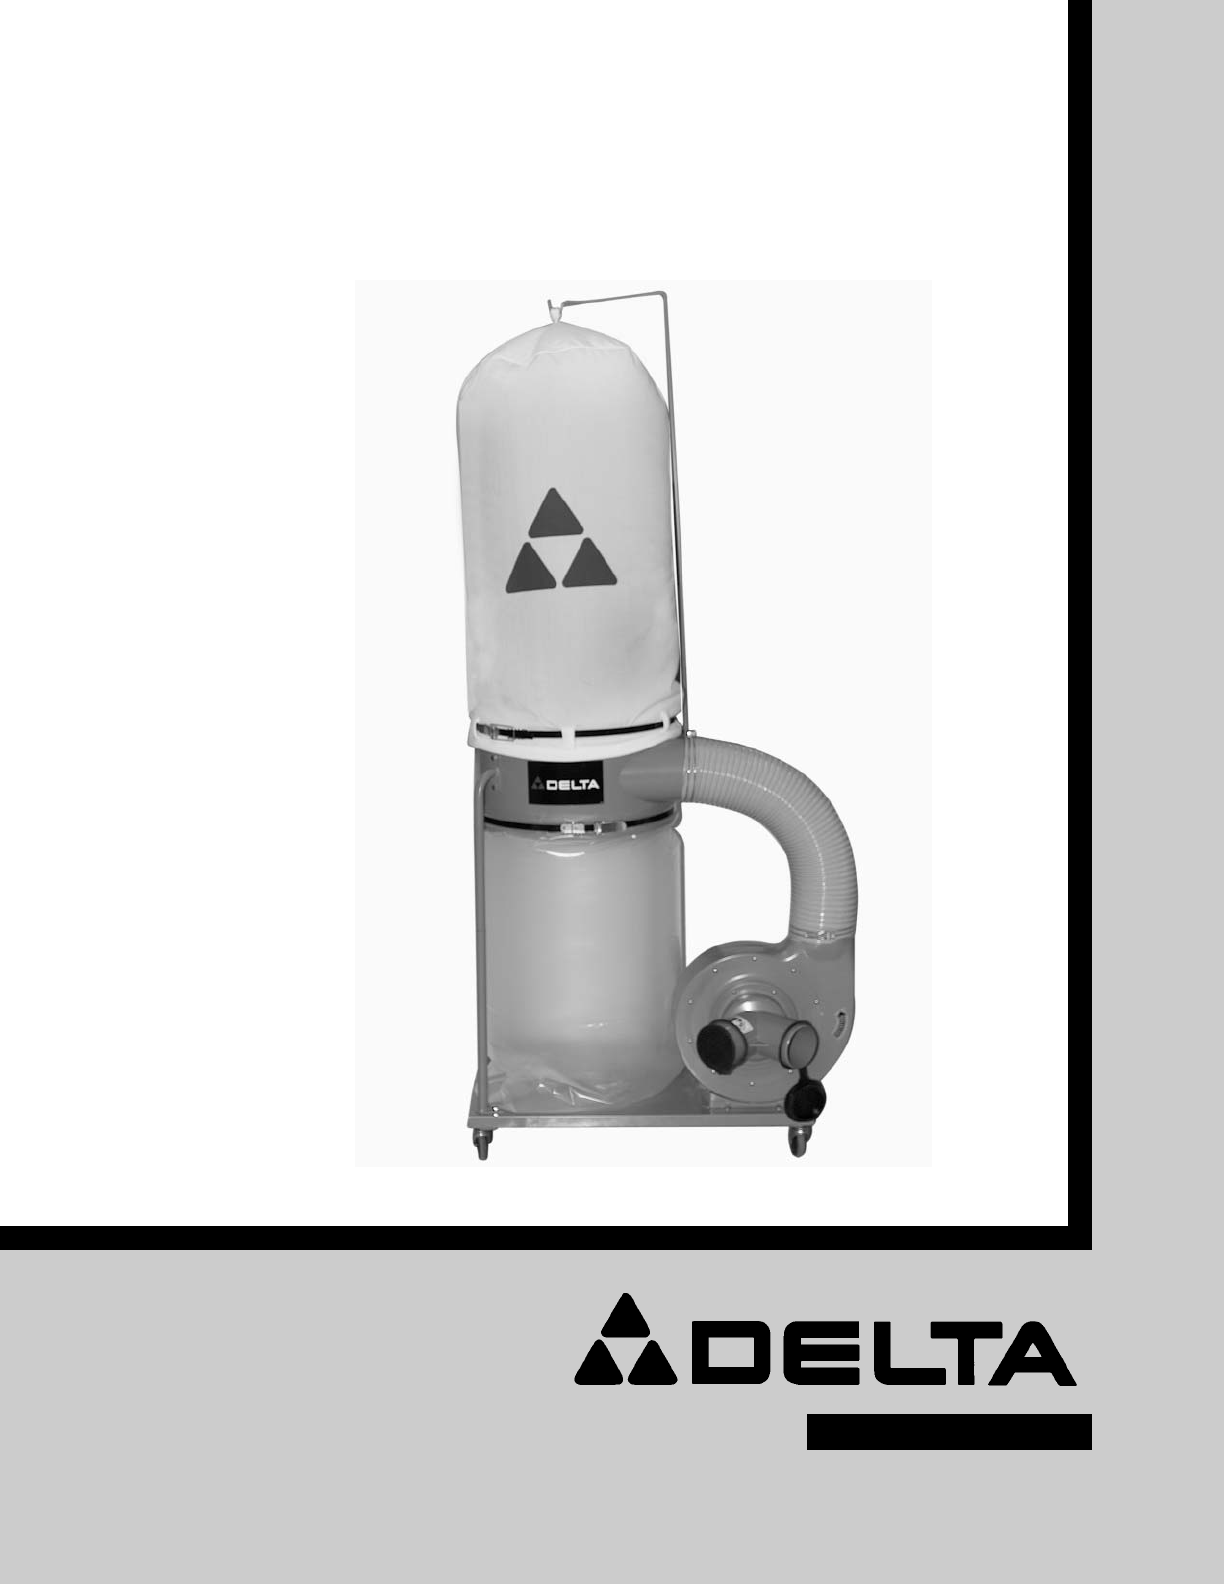 Delta Dust Collector 50 850 User Guide Manualsonlinecom Gas Furnace Schematic Instruction Manual